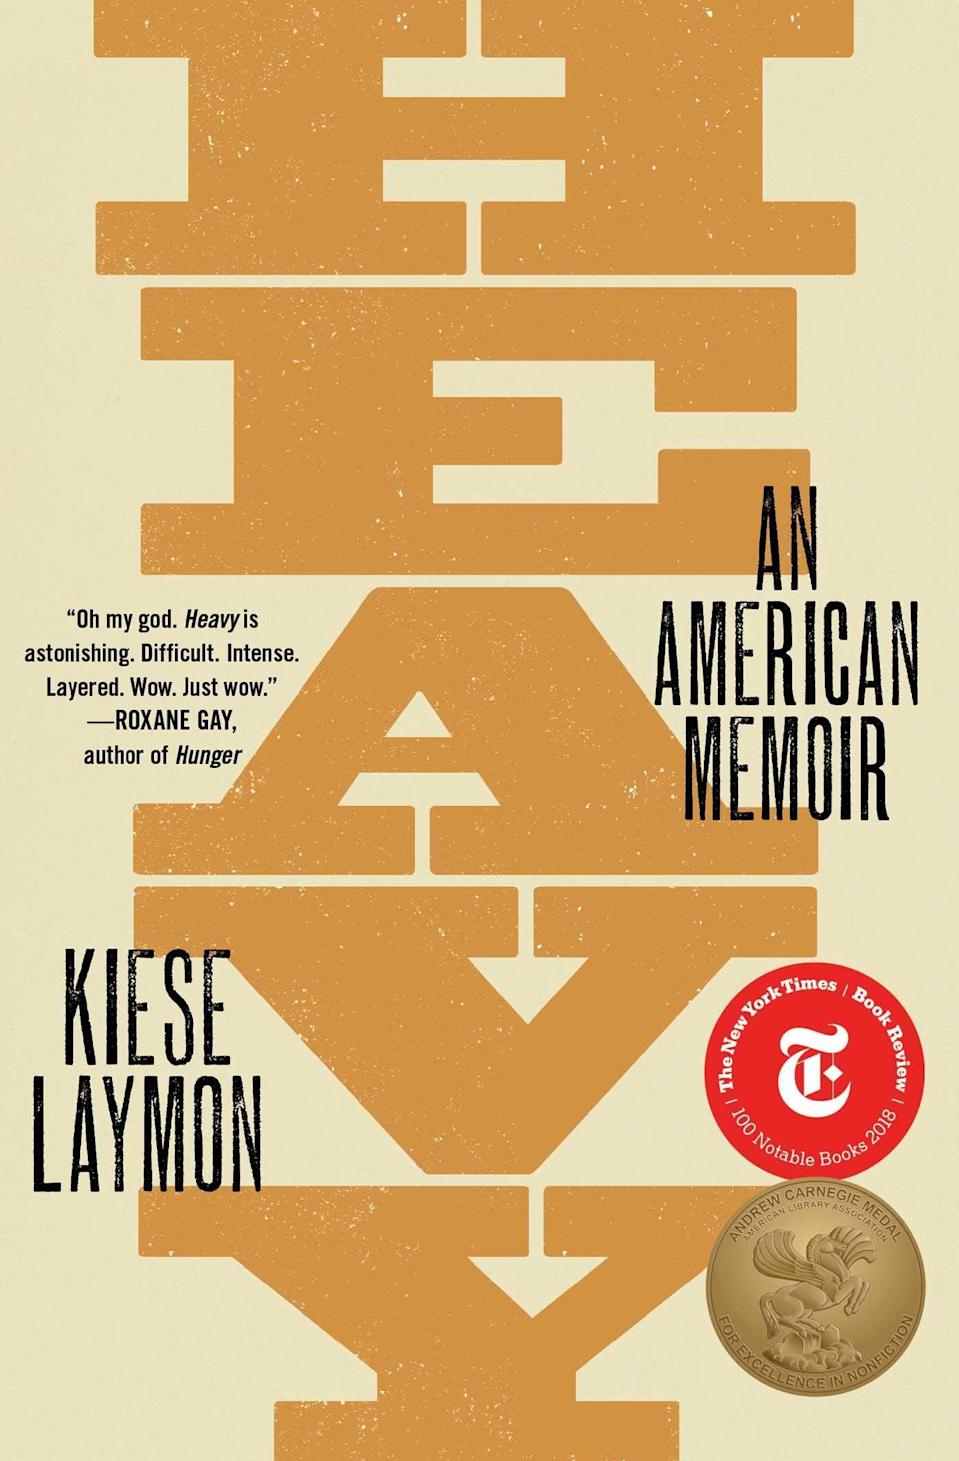 """<p>Kiese Laymon's astounding memoir <a href=""""https://www.popsugar.com/buy?url=https%3A%2F%2Fwww.amazon.com%2FHeavy-American-Memoir-Kiese-Laymon%2Fdp%2F1501125664%2Fref%3Dtmm_pap_swatch_0%3F_encoding%3DUTF8%26qid%3D%26sr%3D&p_name=%3Cstrong%3EHeavy%3C%2Fstrong%3E&retailer=amazon.com&evar1=news%3Aus&evar9=47518818&evar98=https%3A%2F%2Fwww.popsugar.com%2Fnews%2Fphoto-gallery%2F47518818%2Fimage%2F47518825%2FHeavy-American-Memoir-by-Kiese-Laymon&list1=books%2Crace%2Cracism&prop13=api&pdata=1"""" class=""""link rapid-noclick-resp"""" rel=""""nofollow noopener"""" target=""""_blank"""" data-ylk=""""slk:Heavy""""><strong>Heavy</strong></a> is a coming-of-age tale about what it means to grow up as a Black American man in a Black body. As he traces his relationship with his brilliant, academic mother and his own fraught relationship to his body and weight as a young man, he brings vulnerability and boldness to bear in equal measure.</p>"""